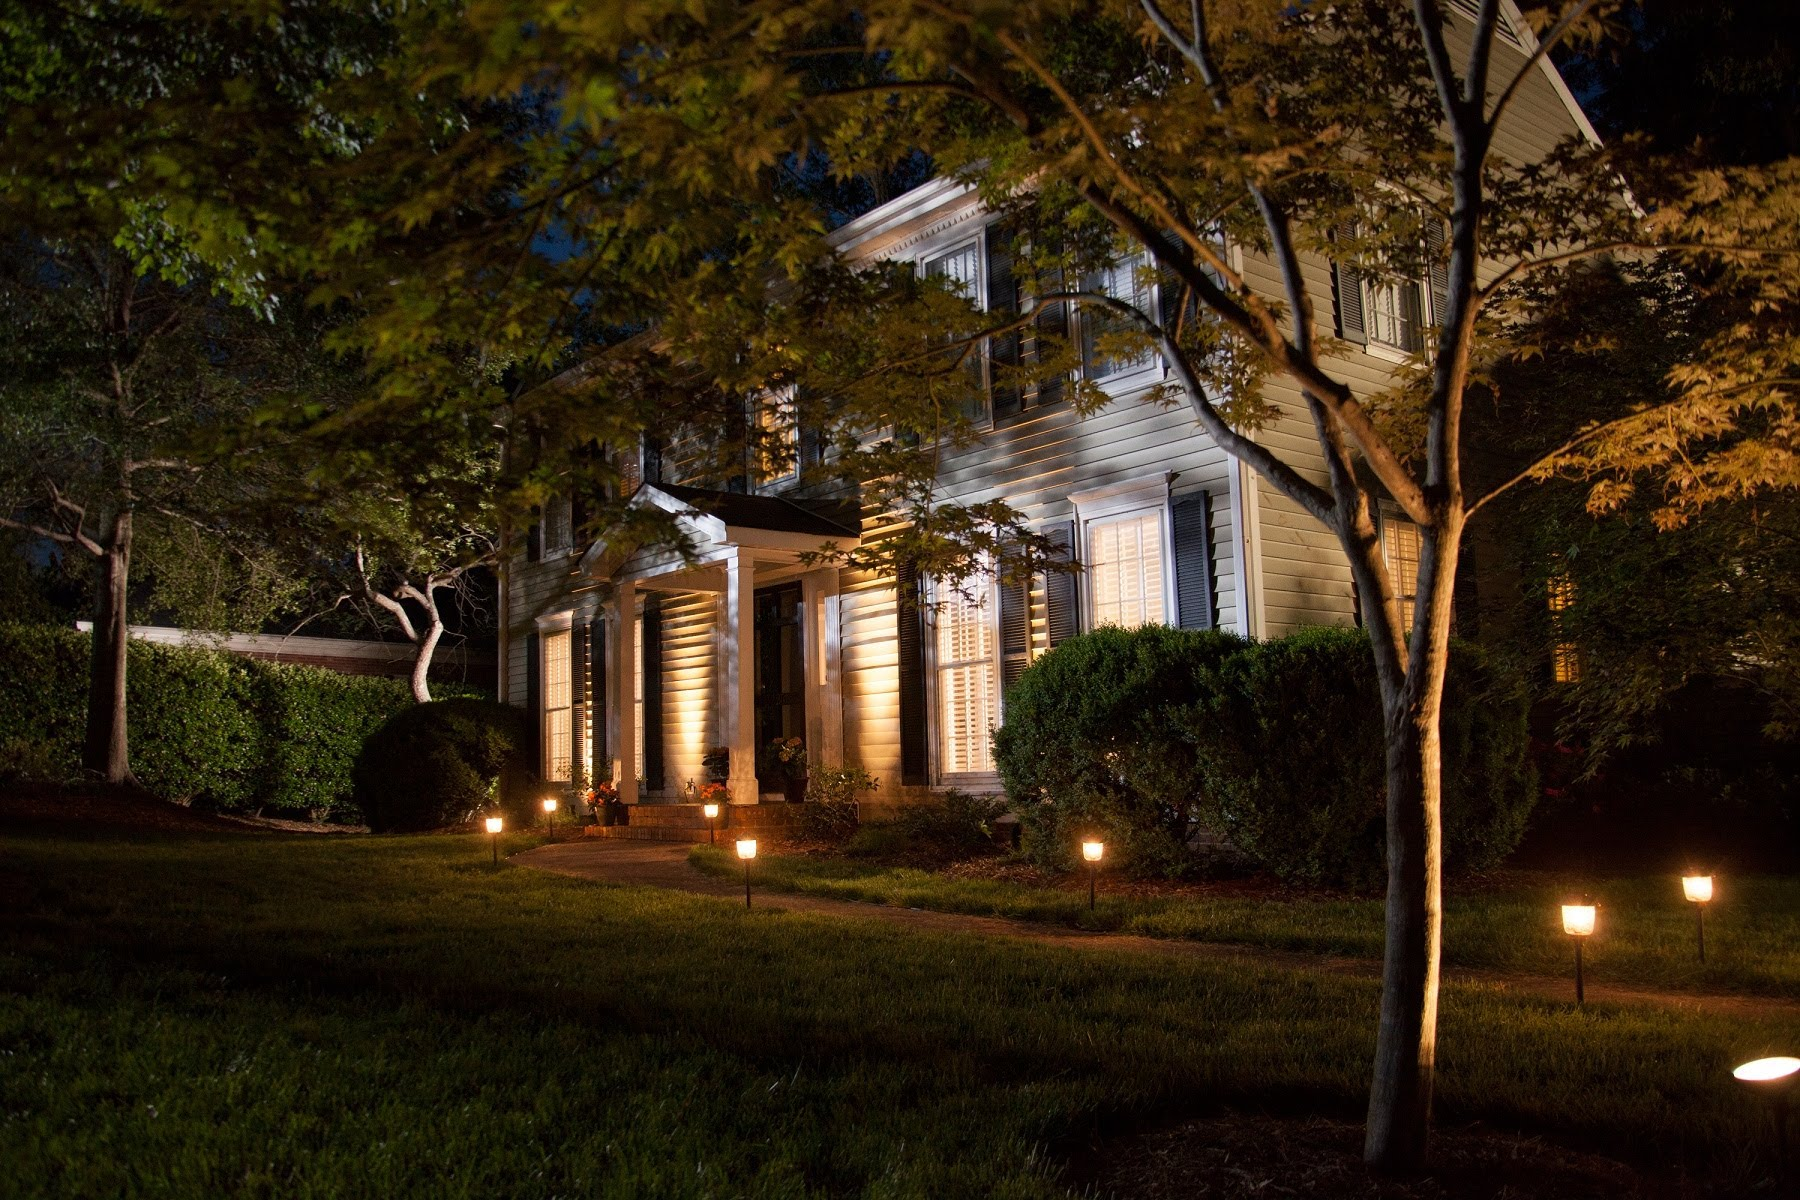 landscape lighting how to install landscaping lighting BKTGNPM